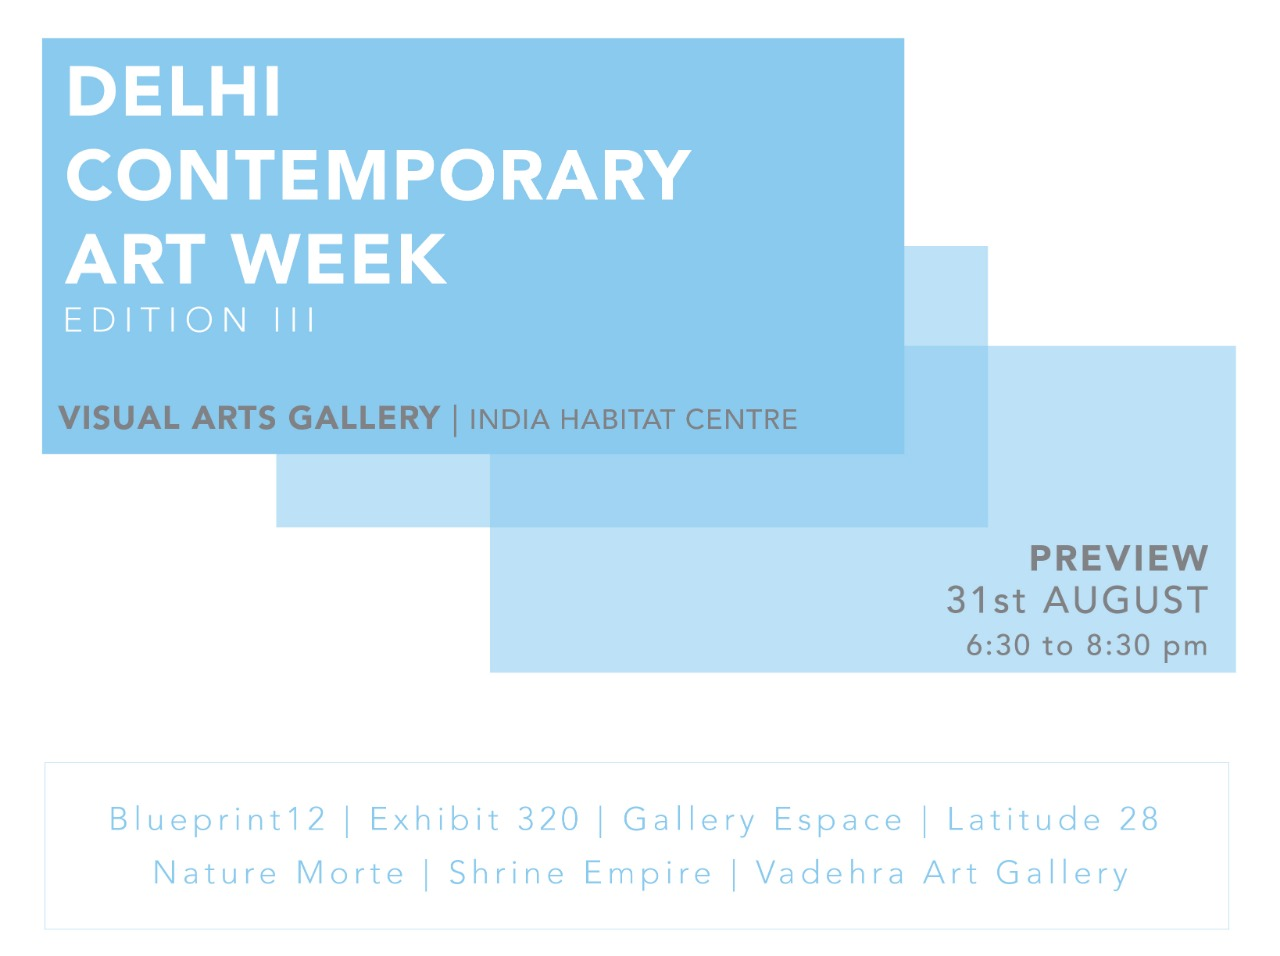 Group show by 7 Contemporary Galleries